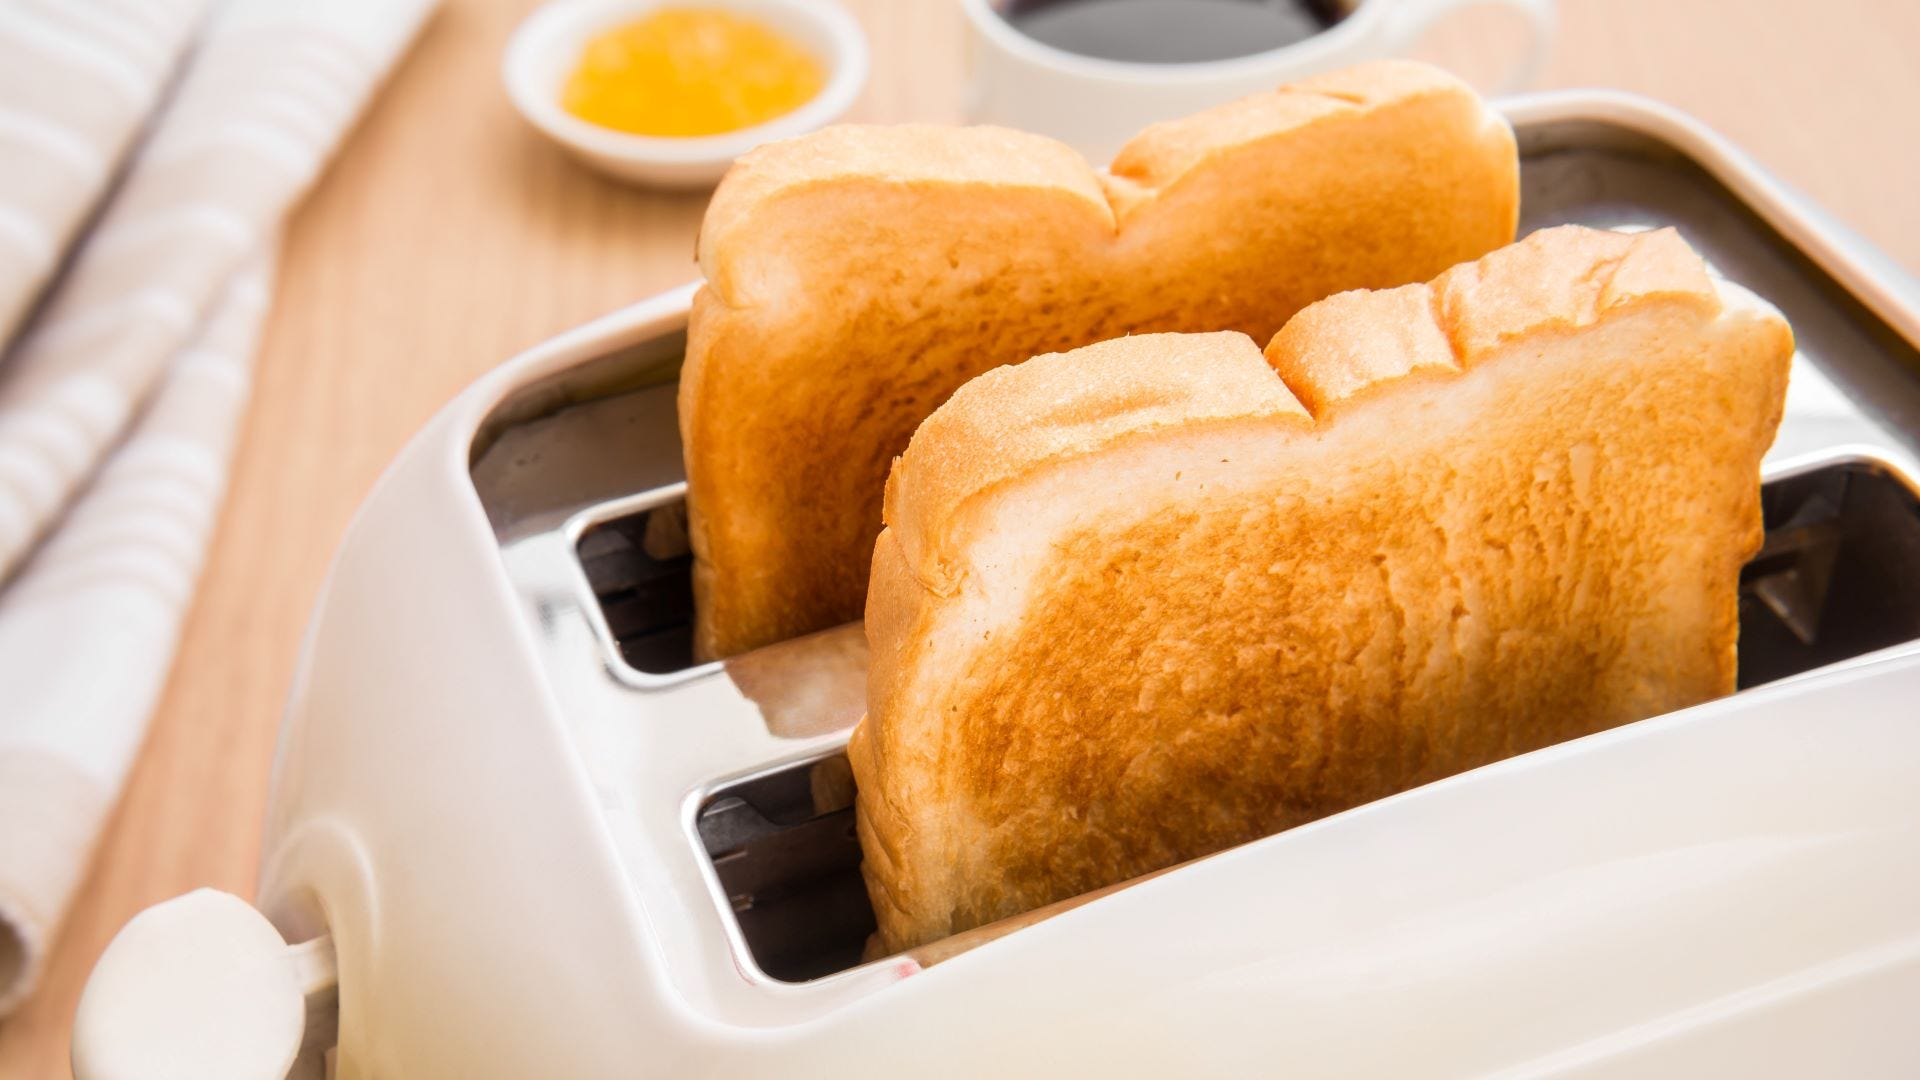 Two slices of toast in a toaster.